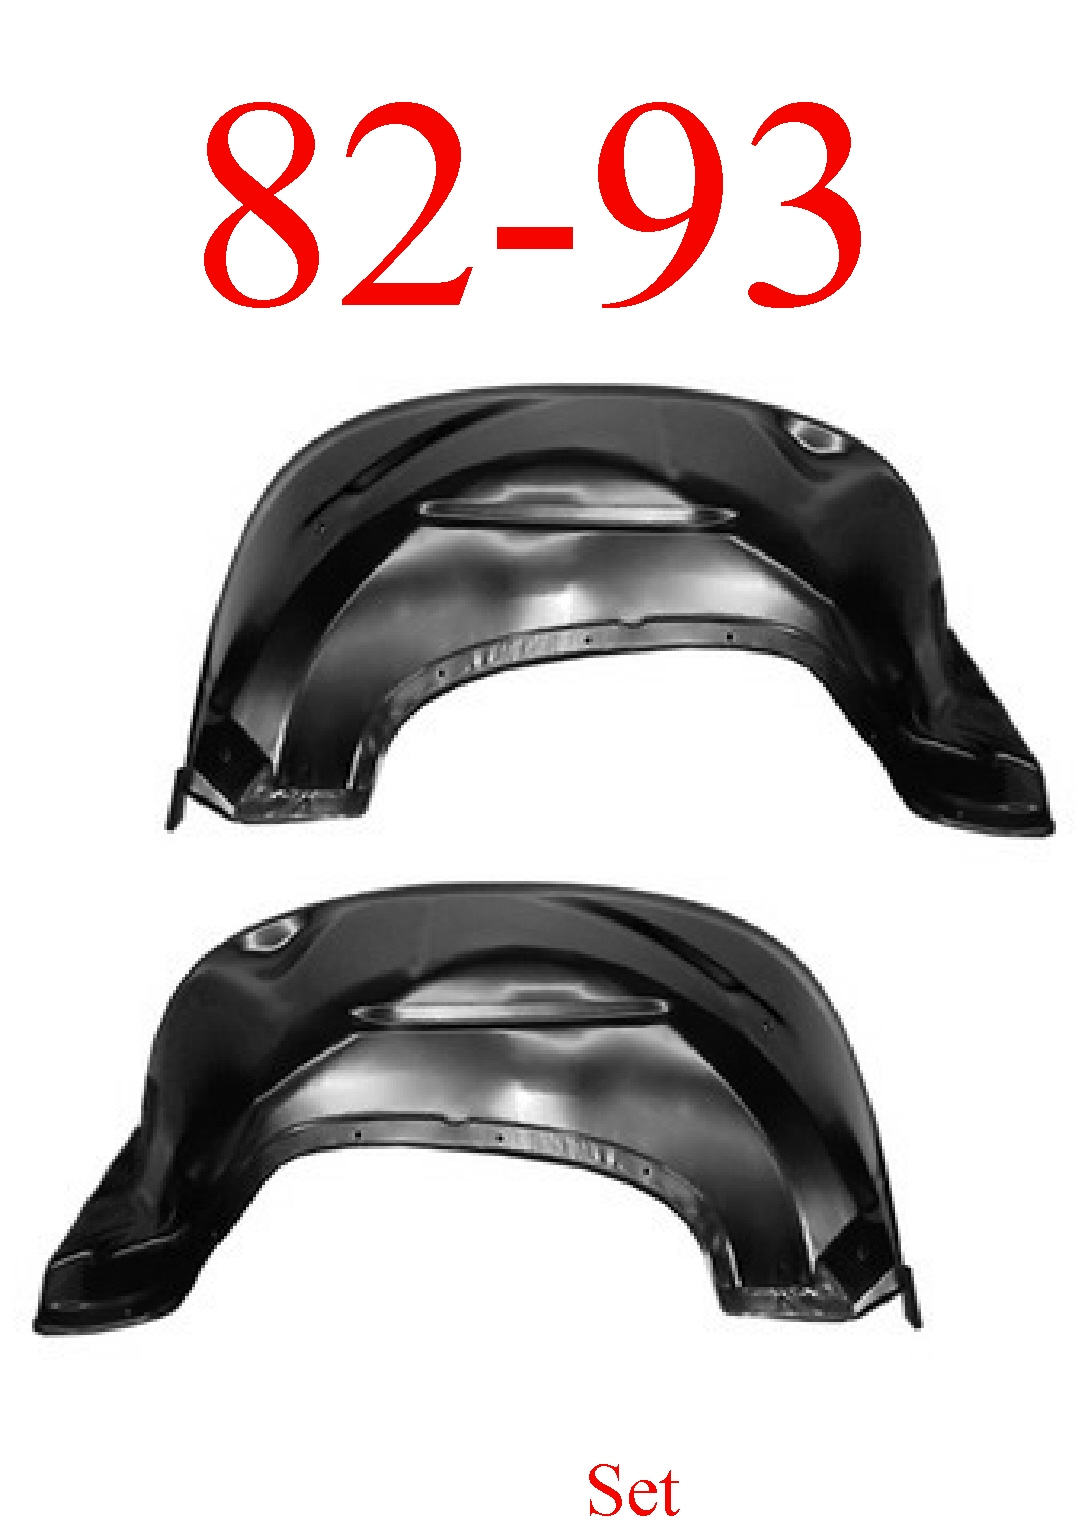 82-93 Chevy S10 Inner Fender Set